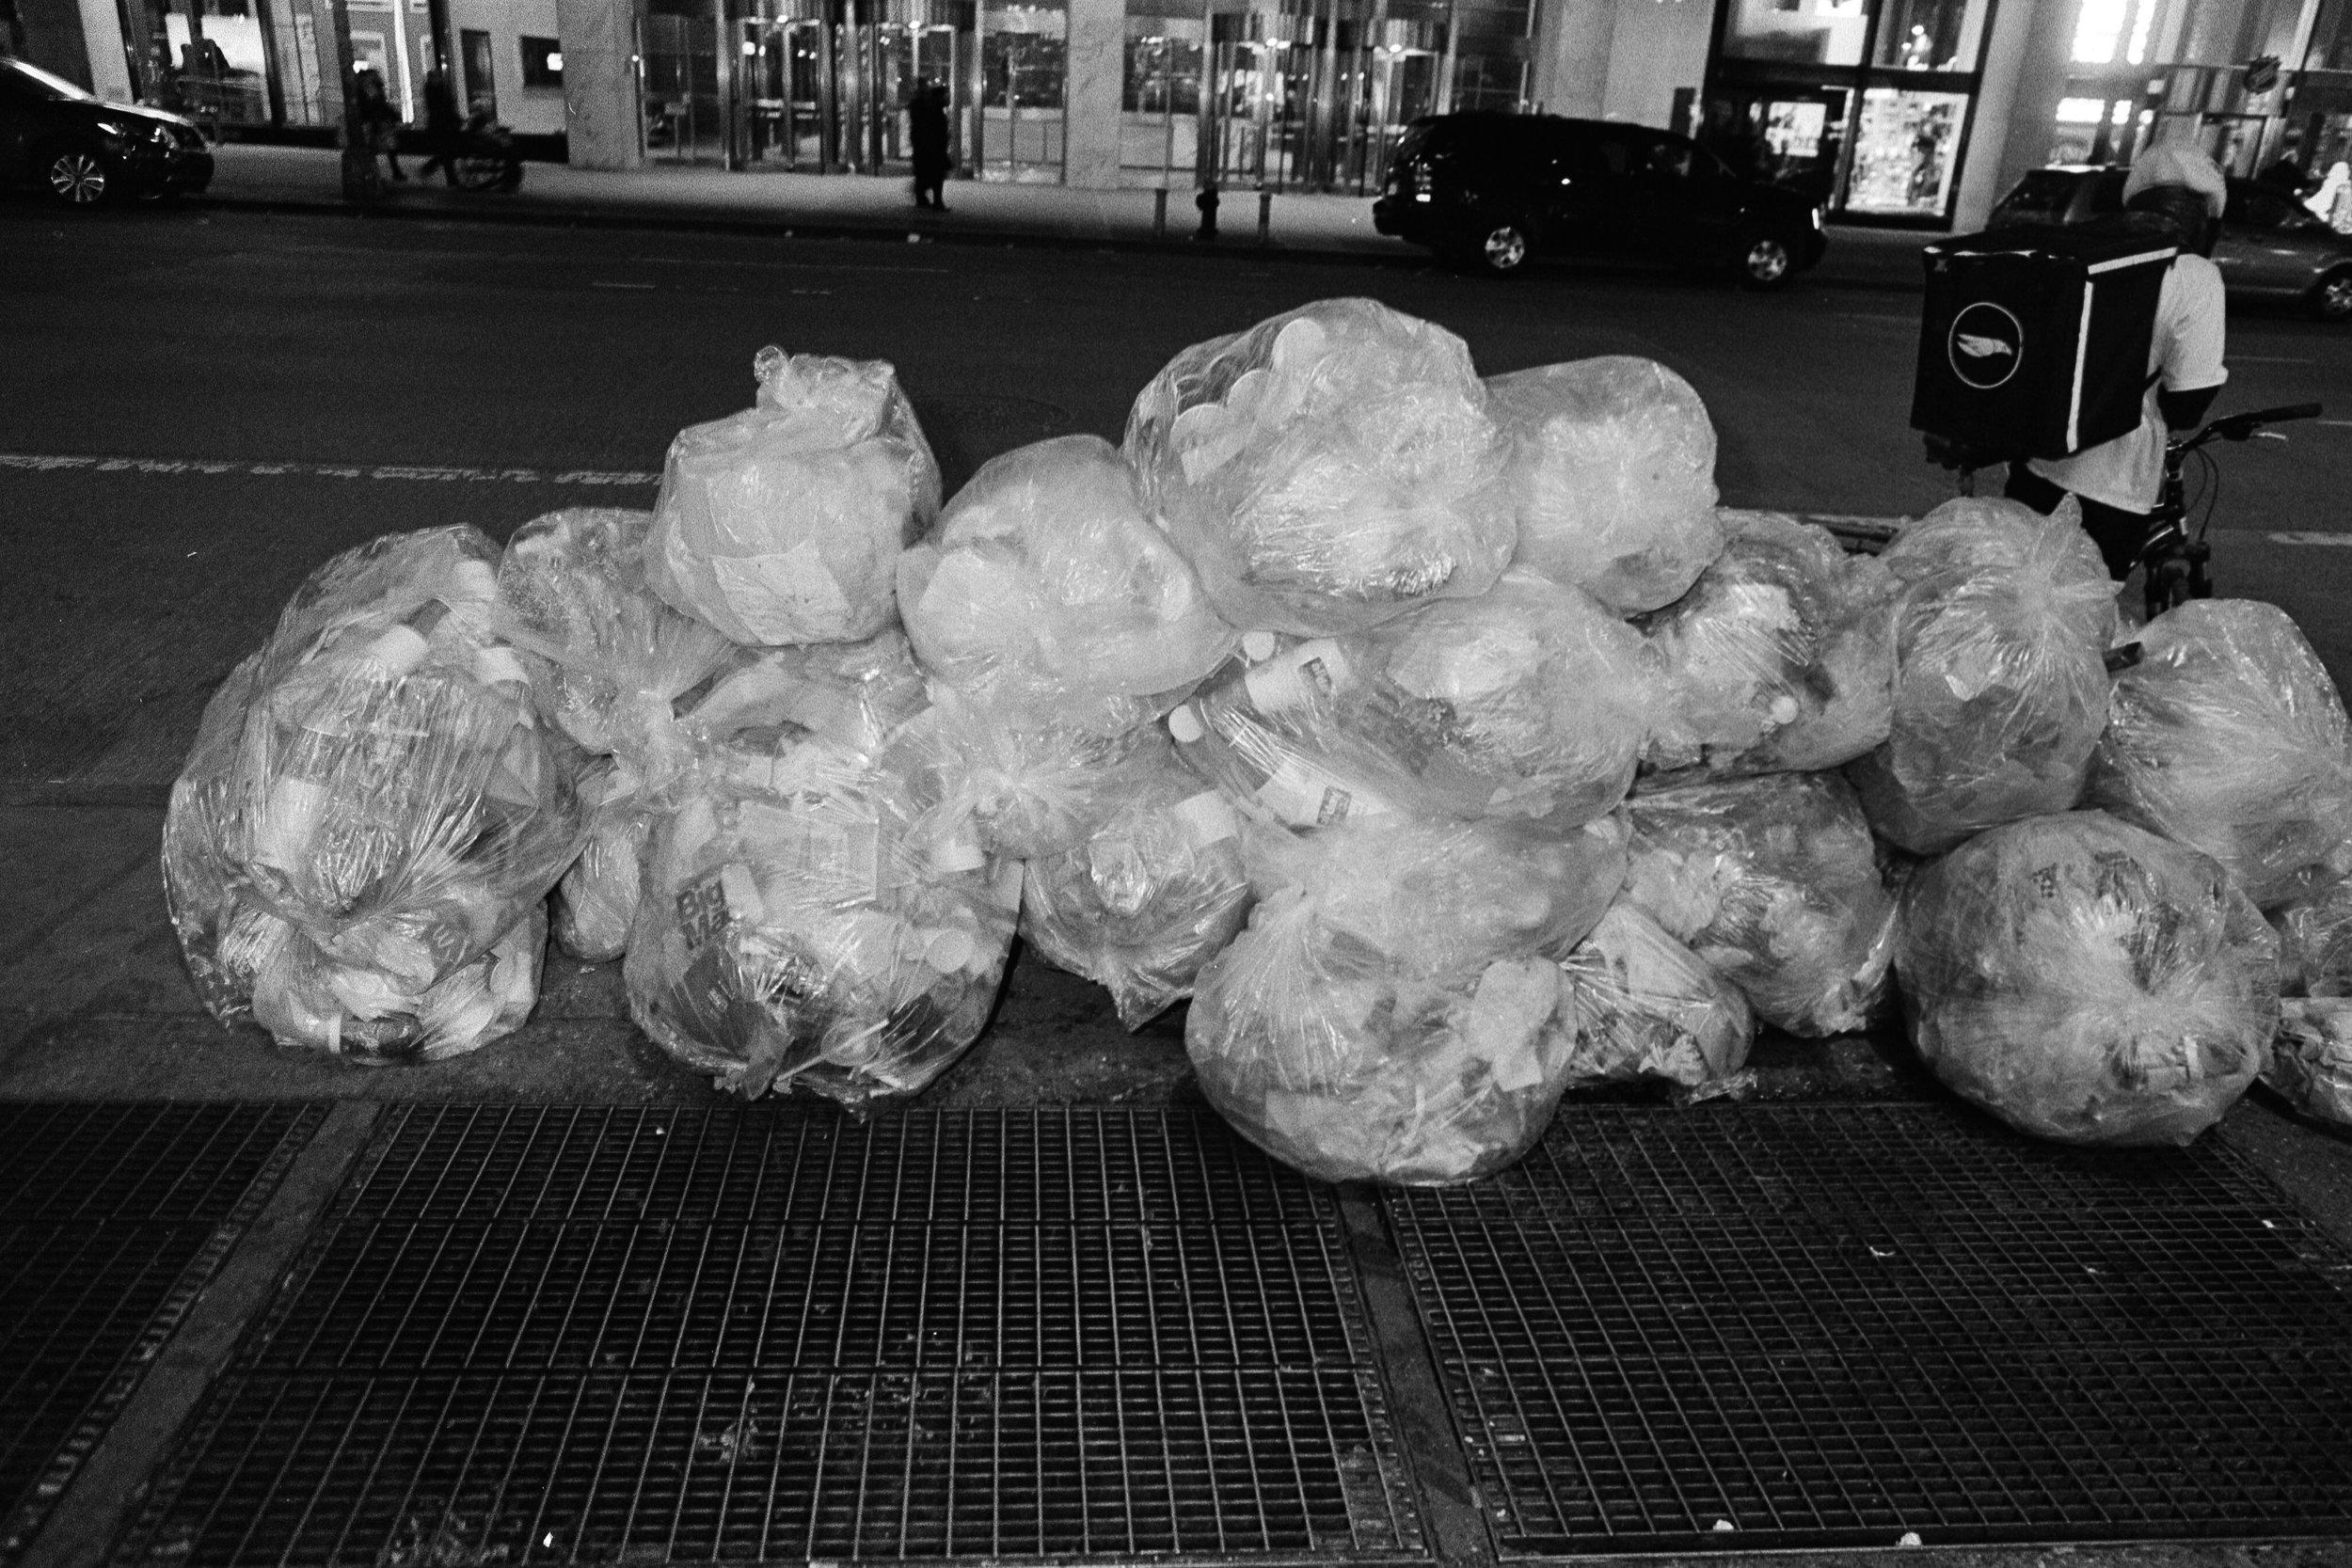 One day trash from a McDonald's store in Time Square